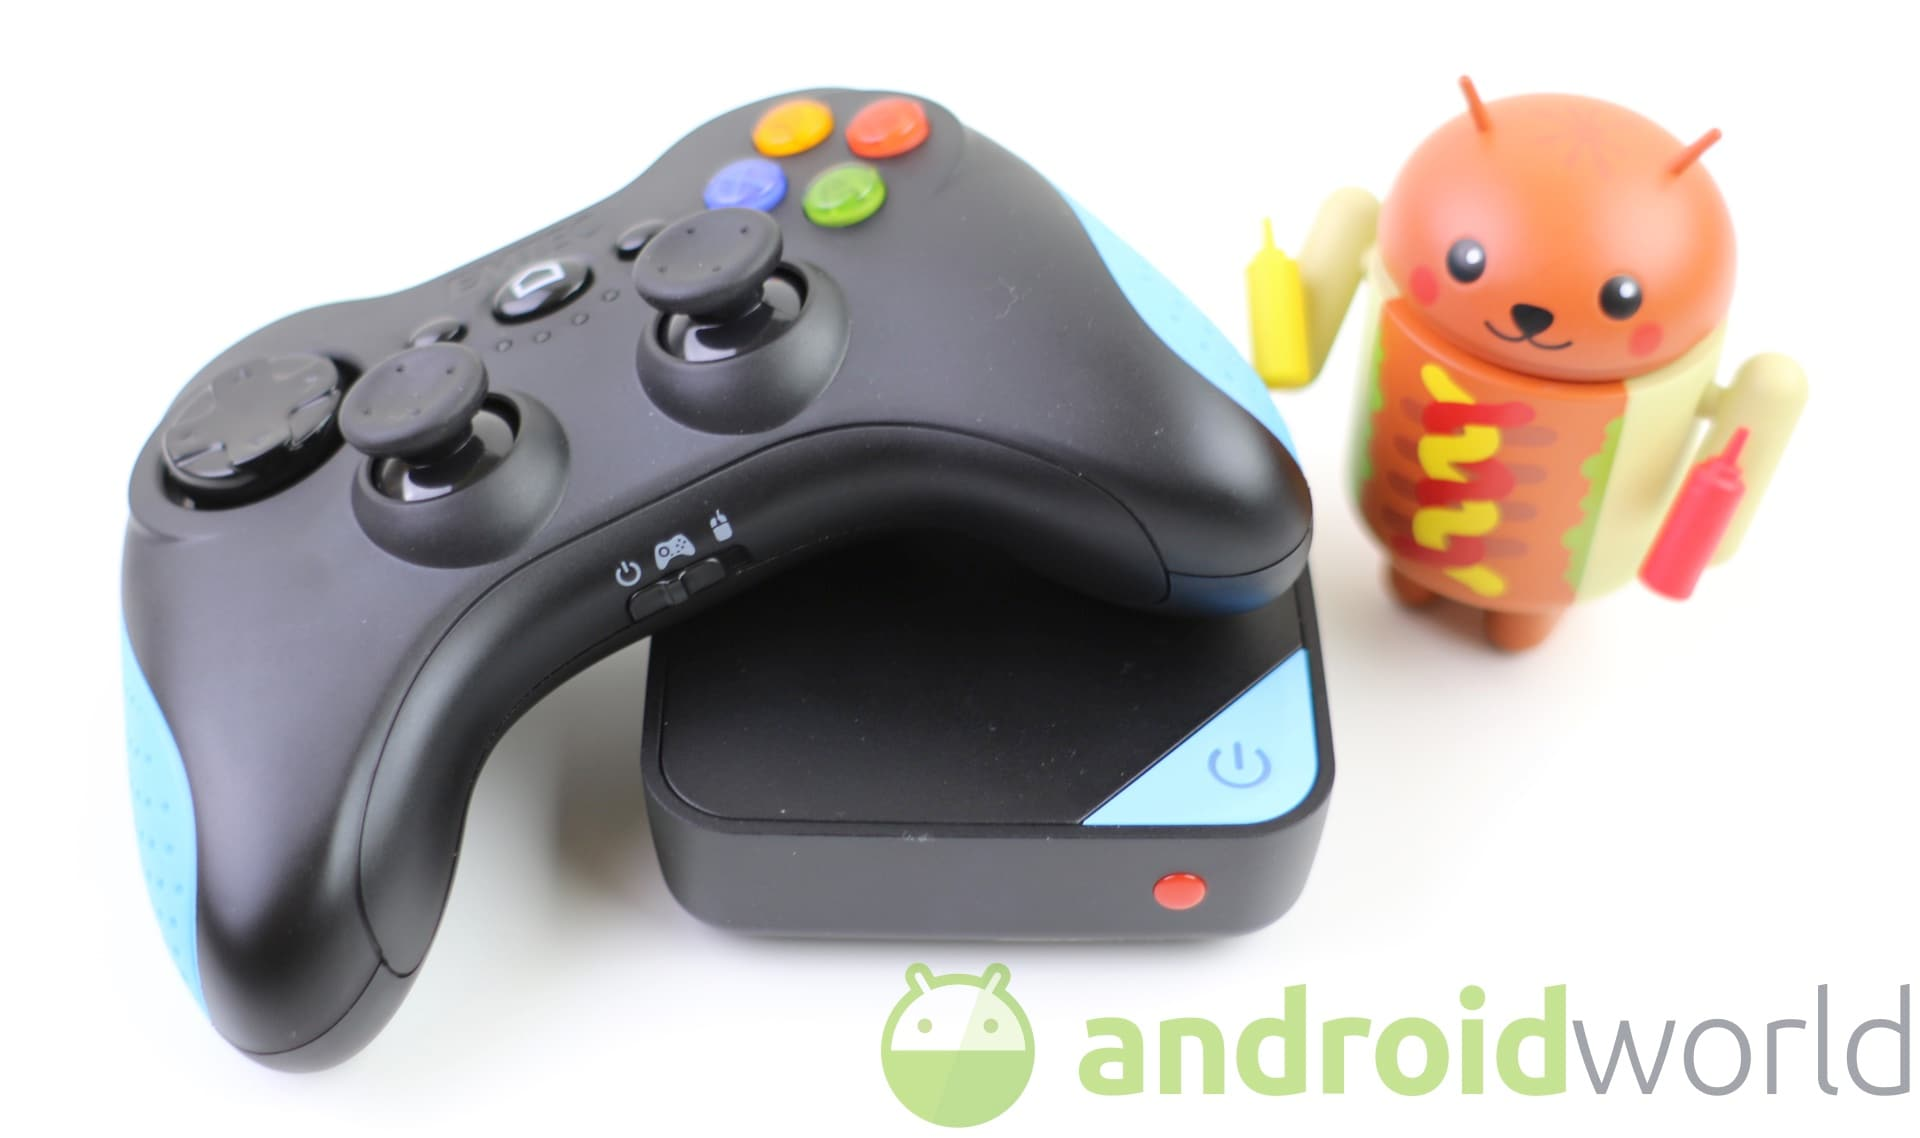 GEM Box, la recensione della console Android con GameFly per i giochi in streaming (foto e video)